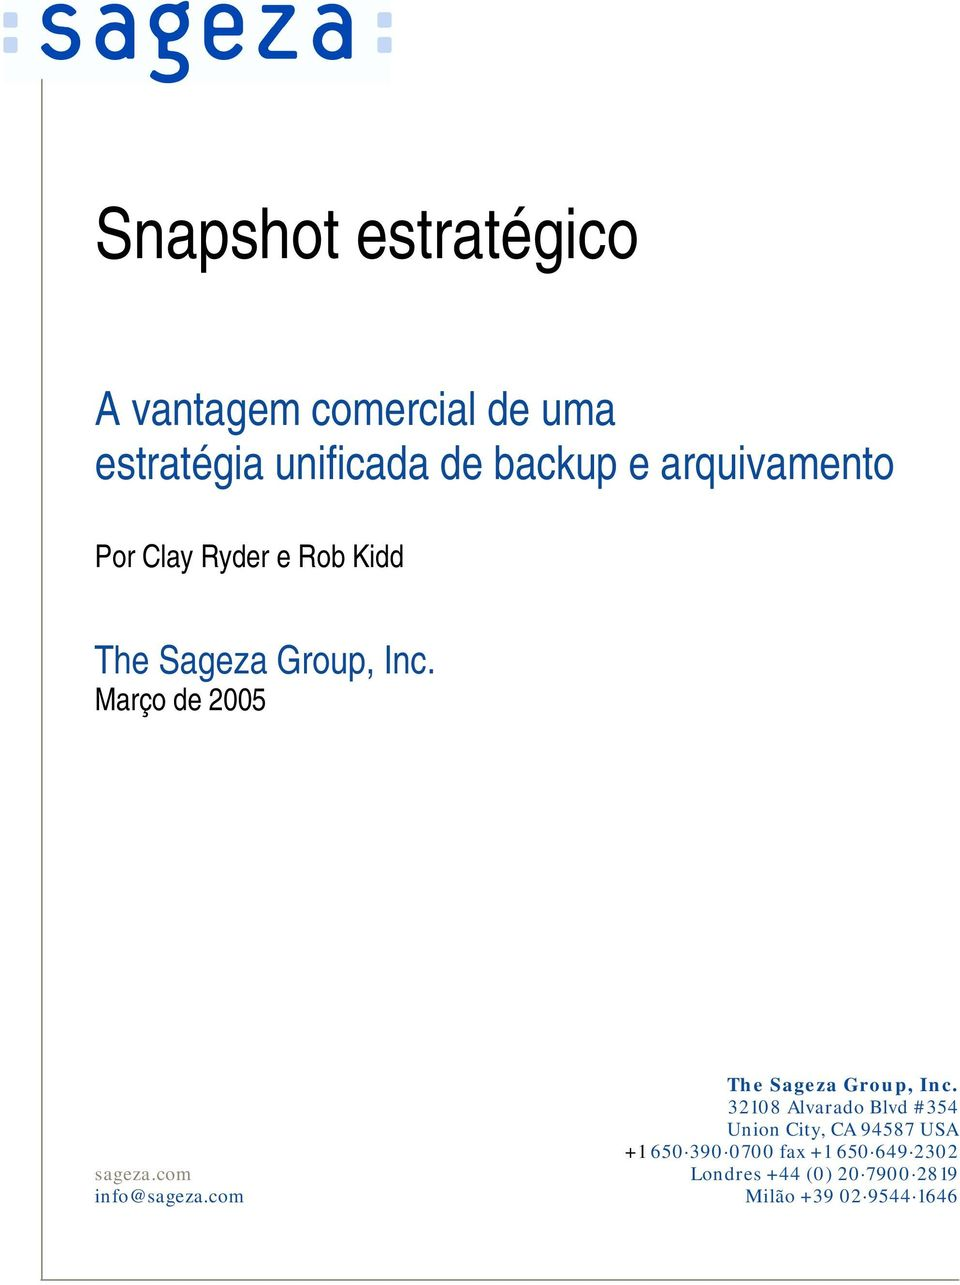 Março de 2005 The Sageza Group, Inc.